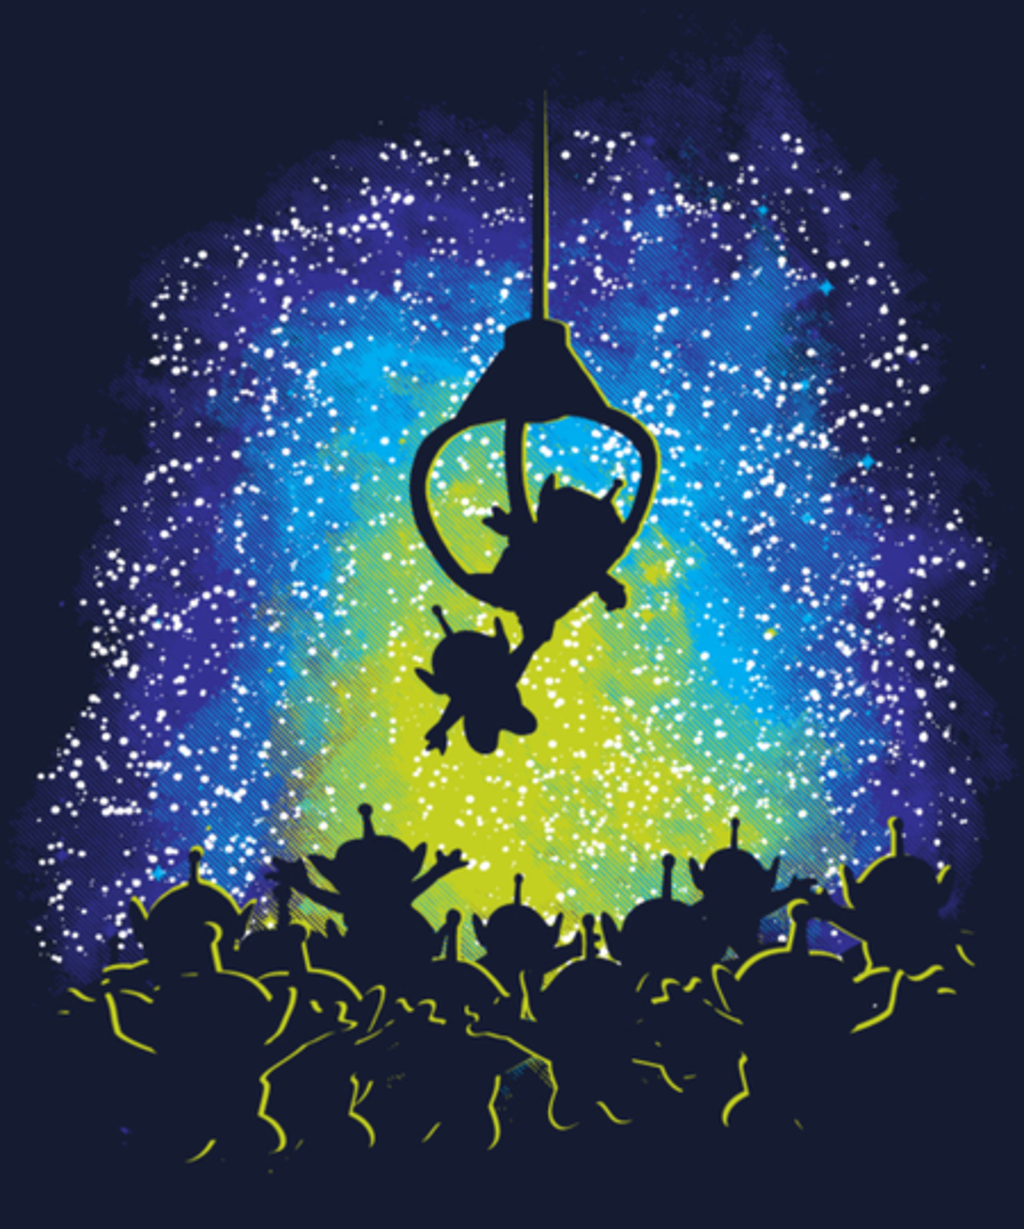 Qwertee: The Claw